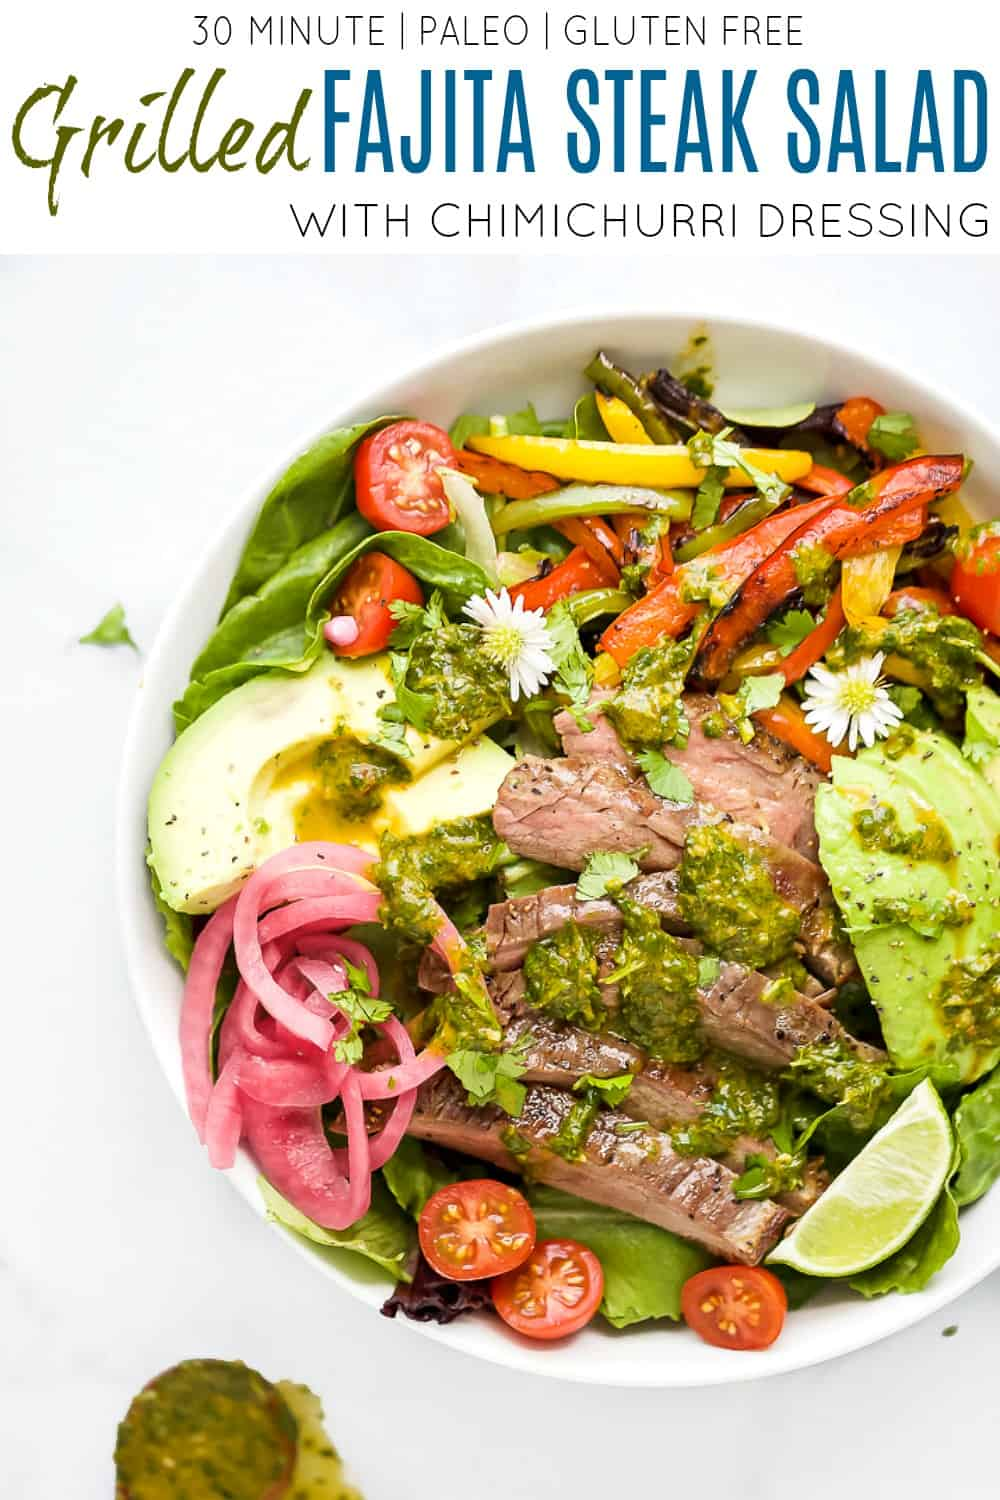 pinterest image for Grilled Fajita Steak Salad with Chimichurri Dressing